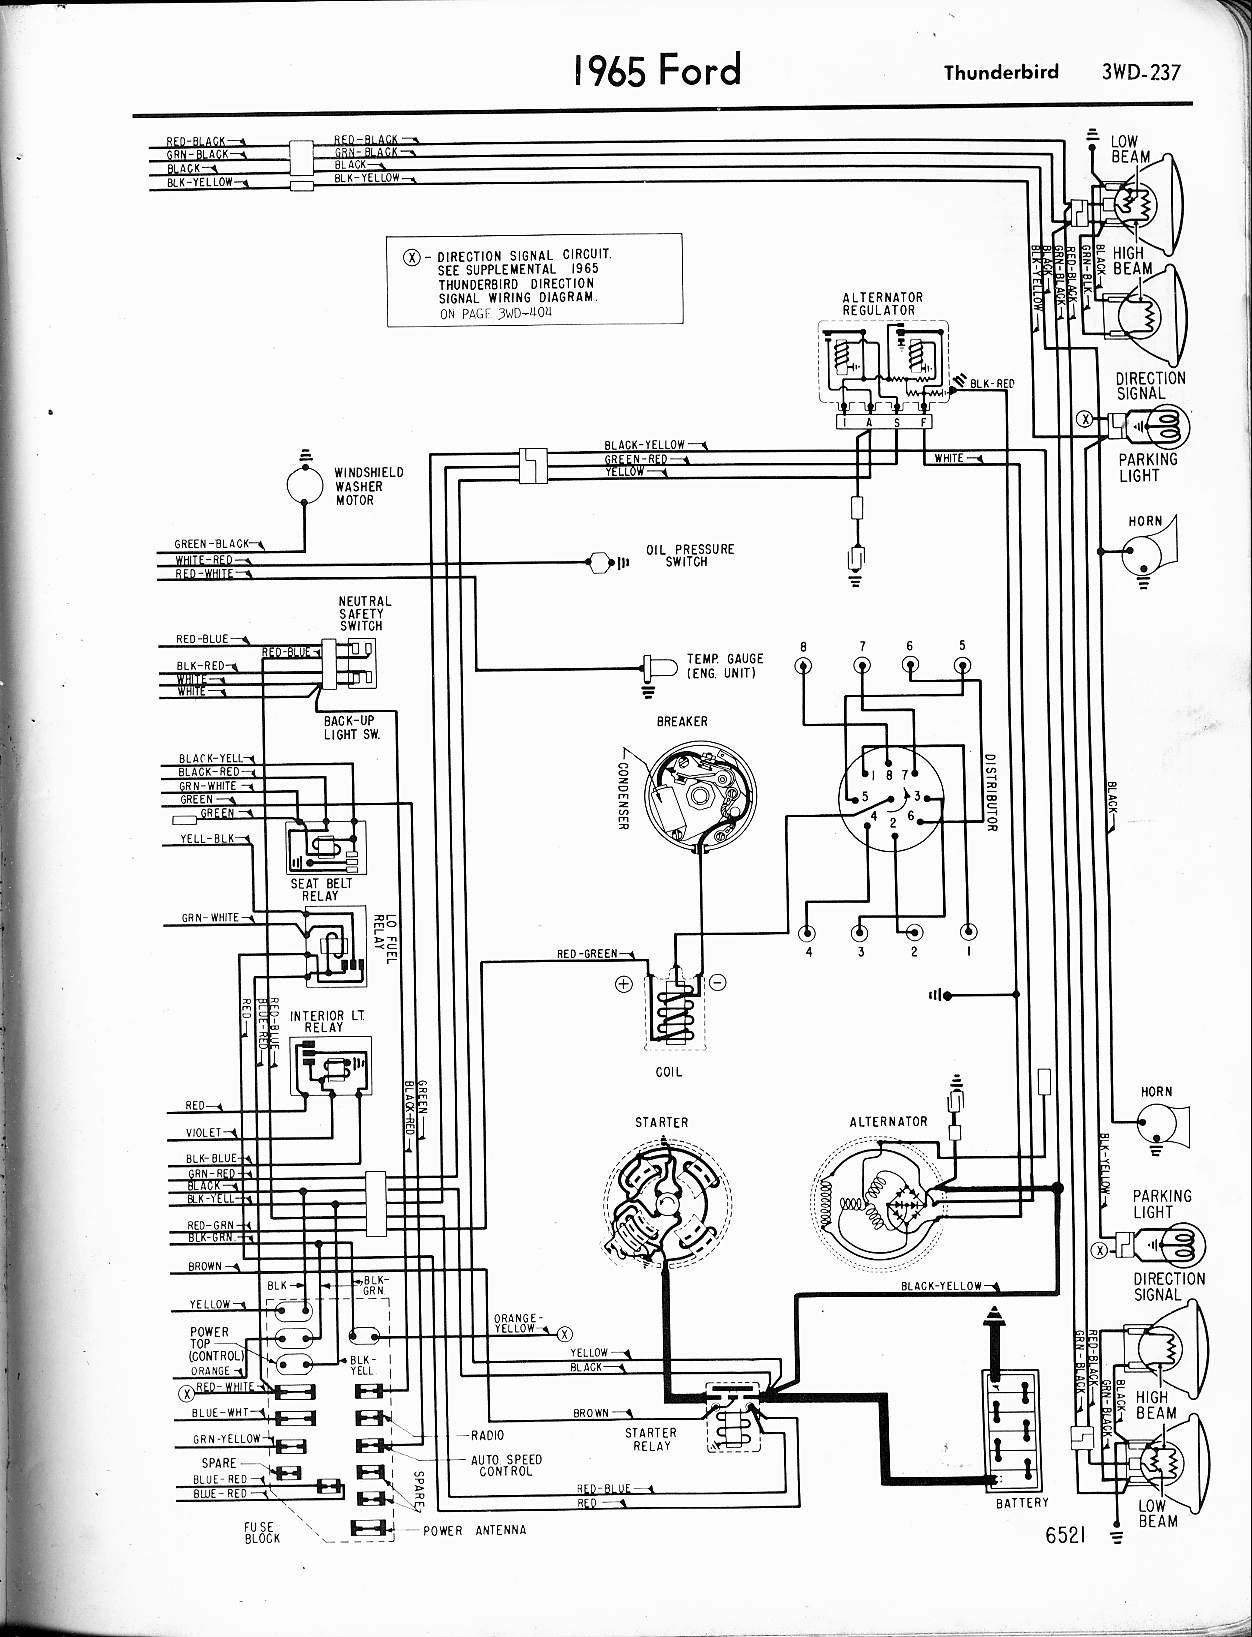 How to Wire Up 3prong Flasher 084 Voltage Regulator Wiring Diagram 2004 Chevy Suburban Of How to Wire Up 3prong Flasher